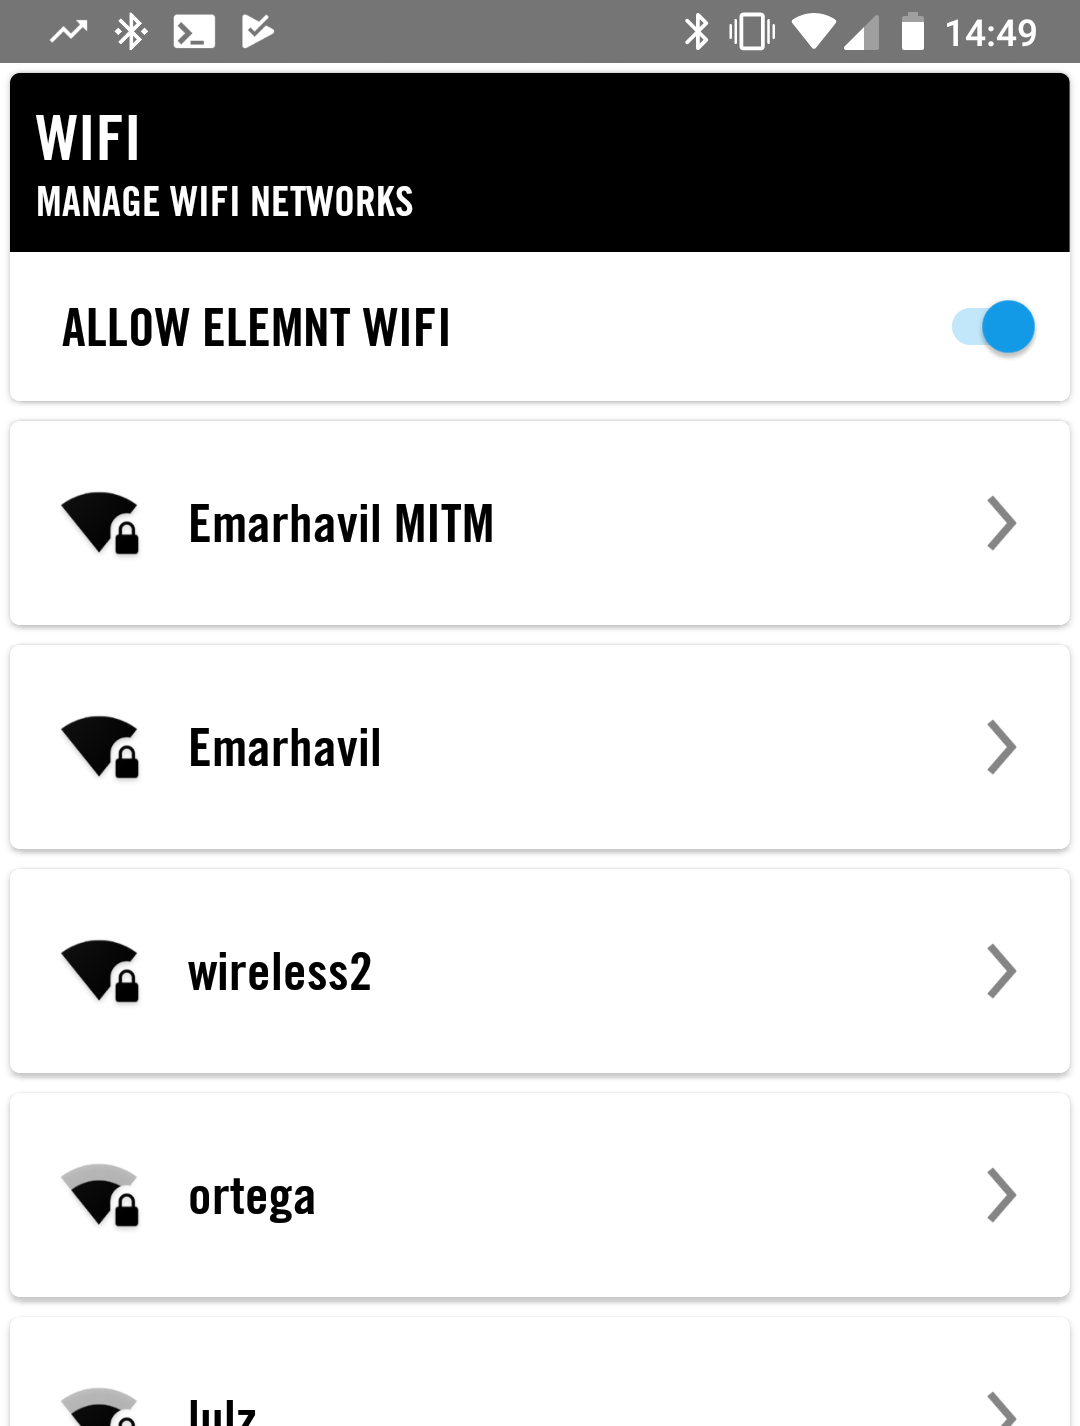 an ELEMNT BOLT config screen with Emarhavil MITM as an option